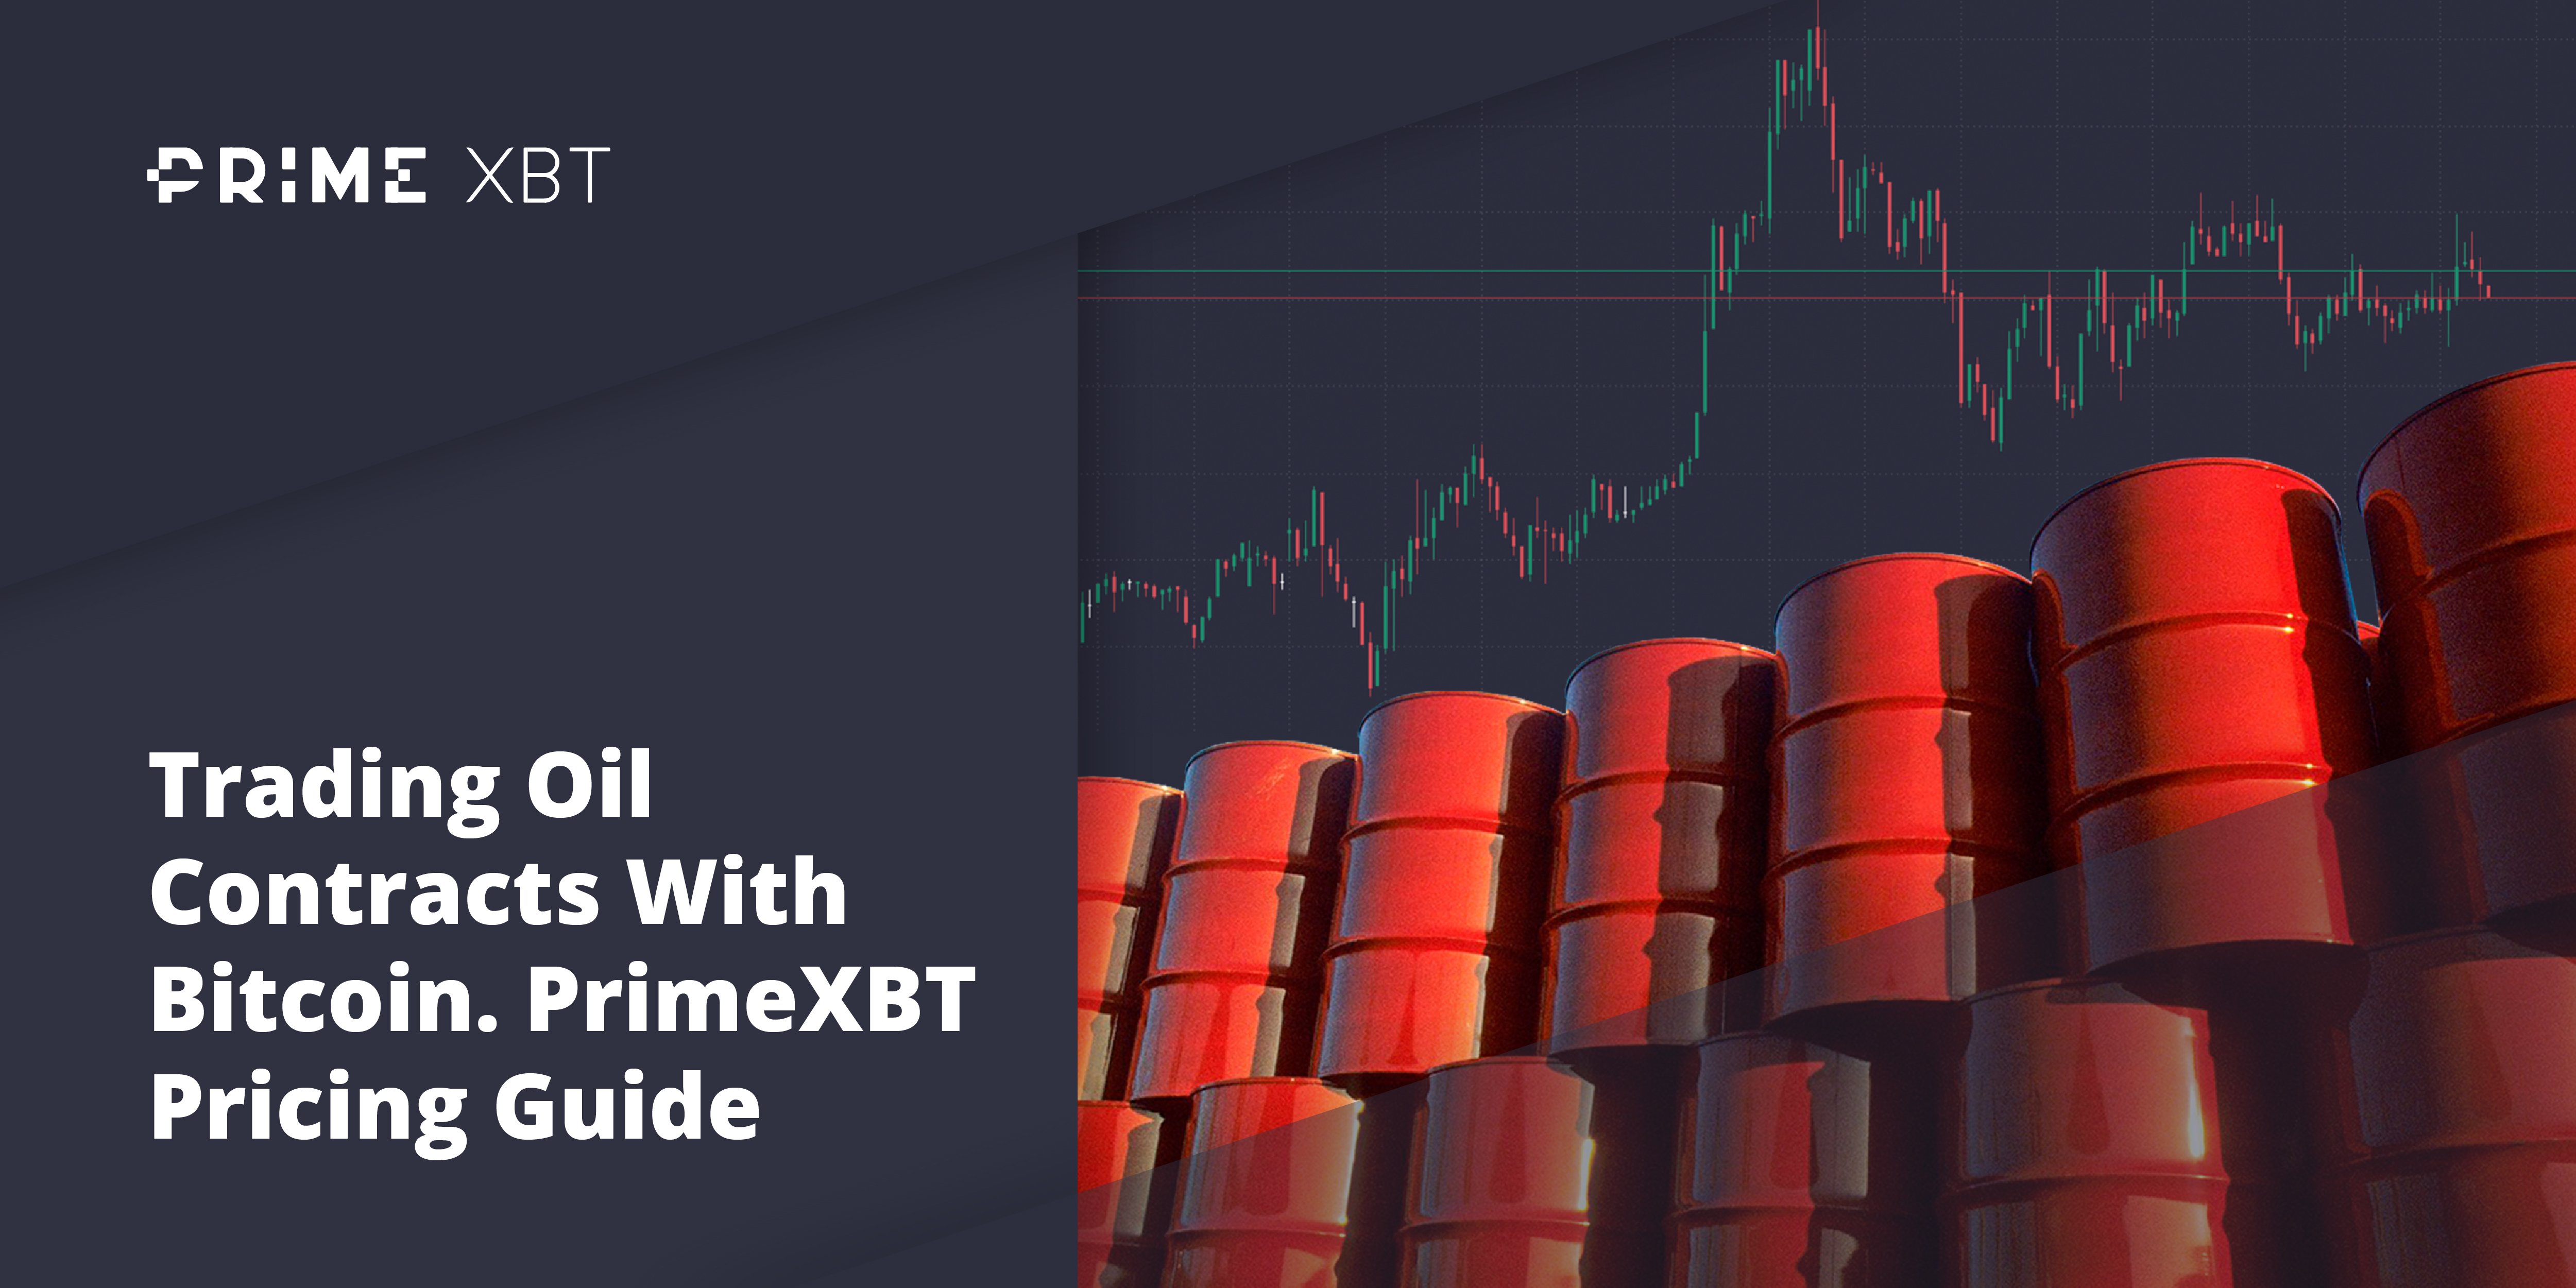 Trading Oil Contacts With Bitcoin: PrimeXBT Pricing Guide - 2020 04 23 18.12.11